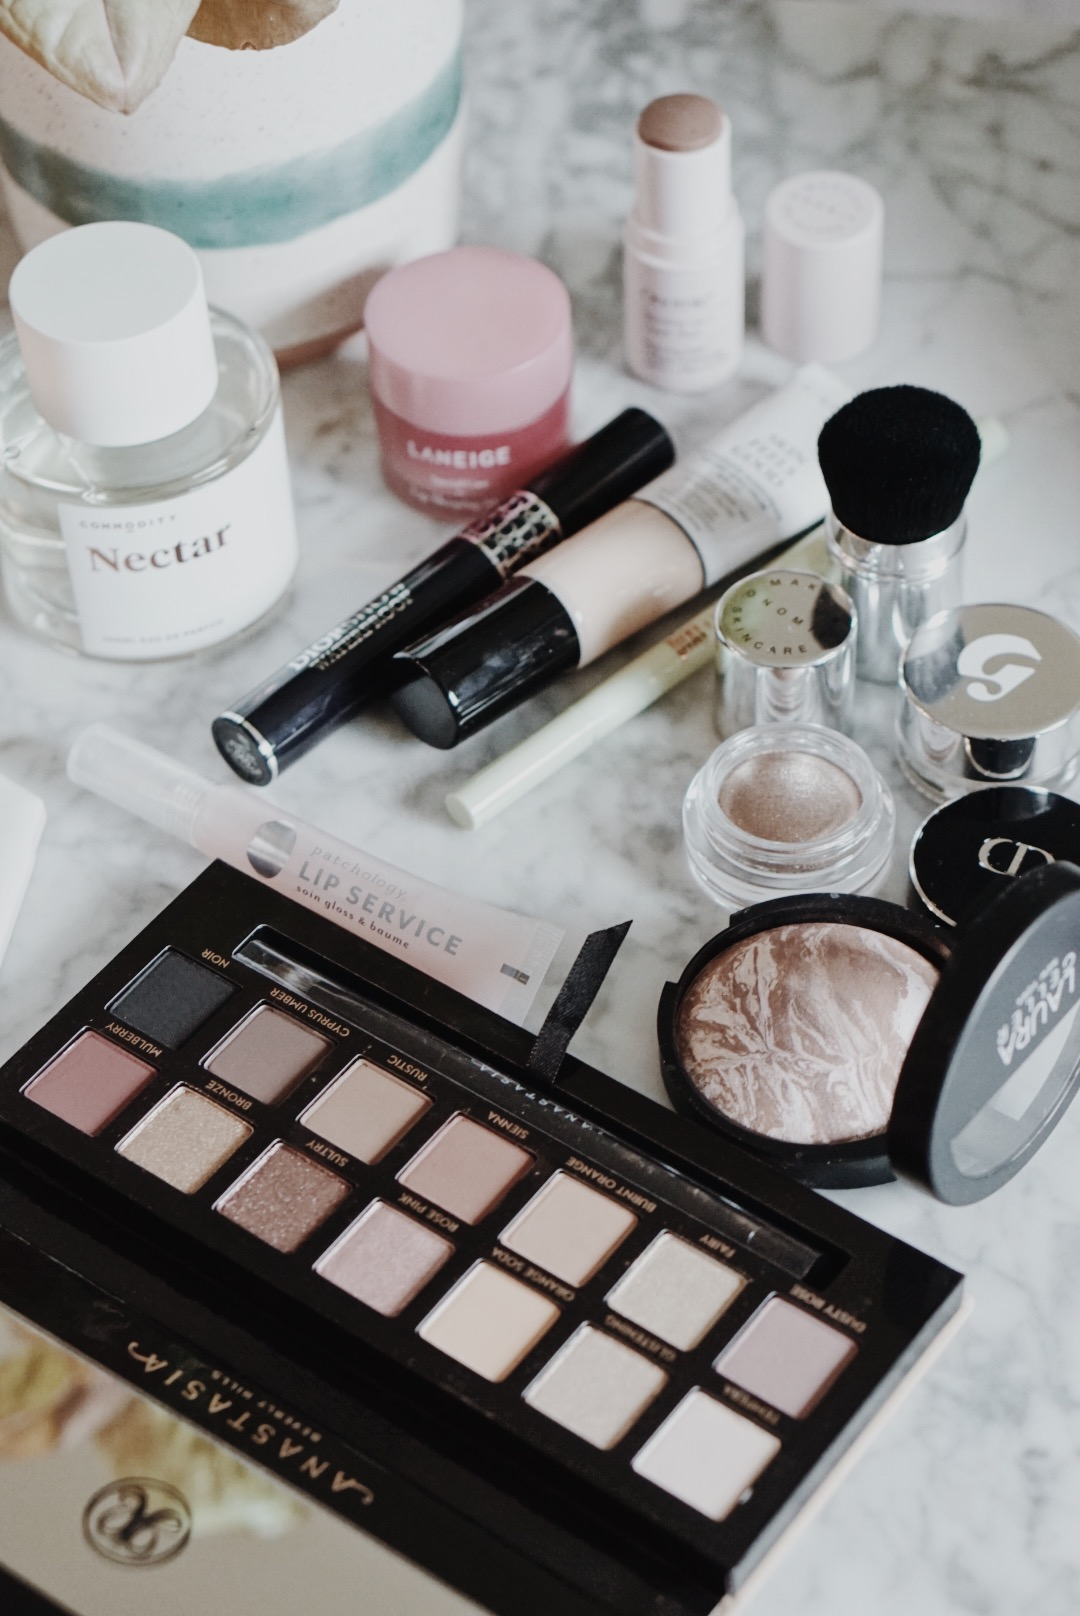 CHY Makeup Shakeup: Lancome, Glossier, Dior, Pixi, Laneige, Onomie, Patchology, Commodity, Anastasia Beverly Hills